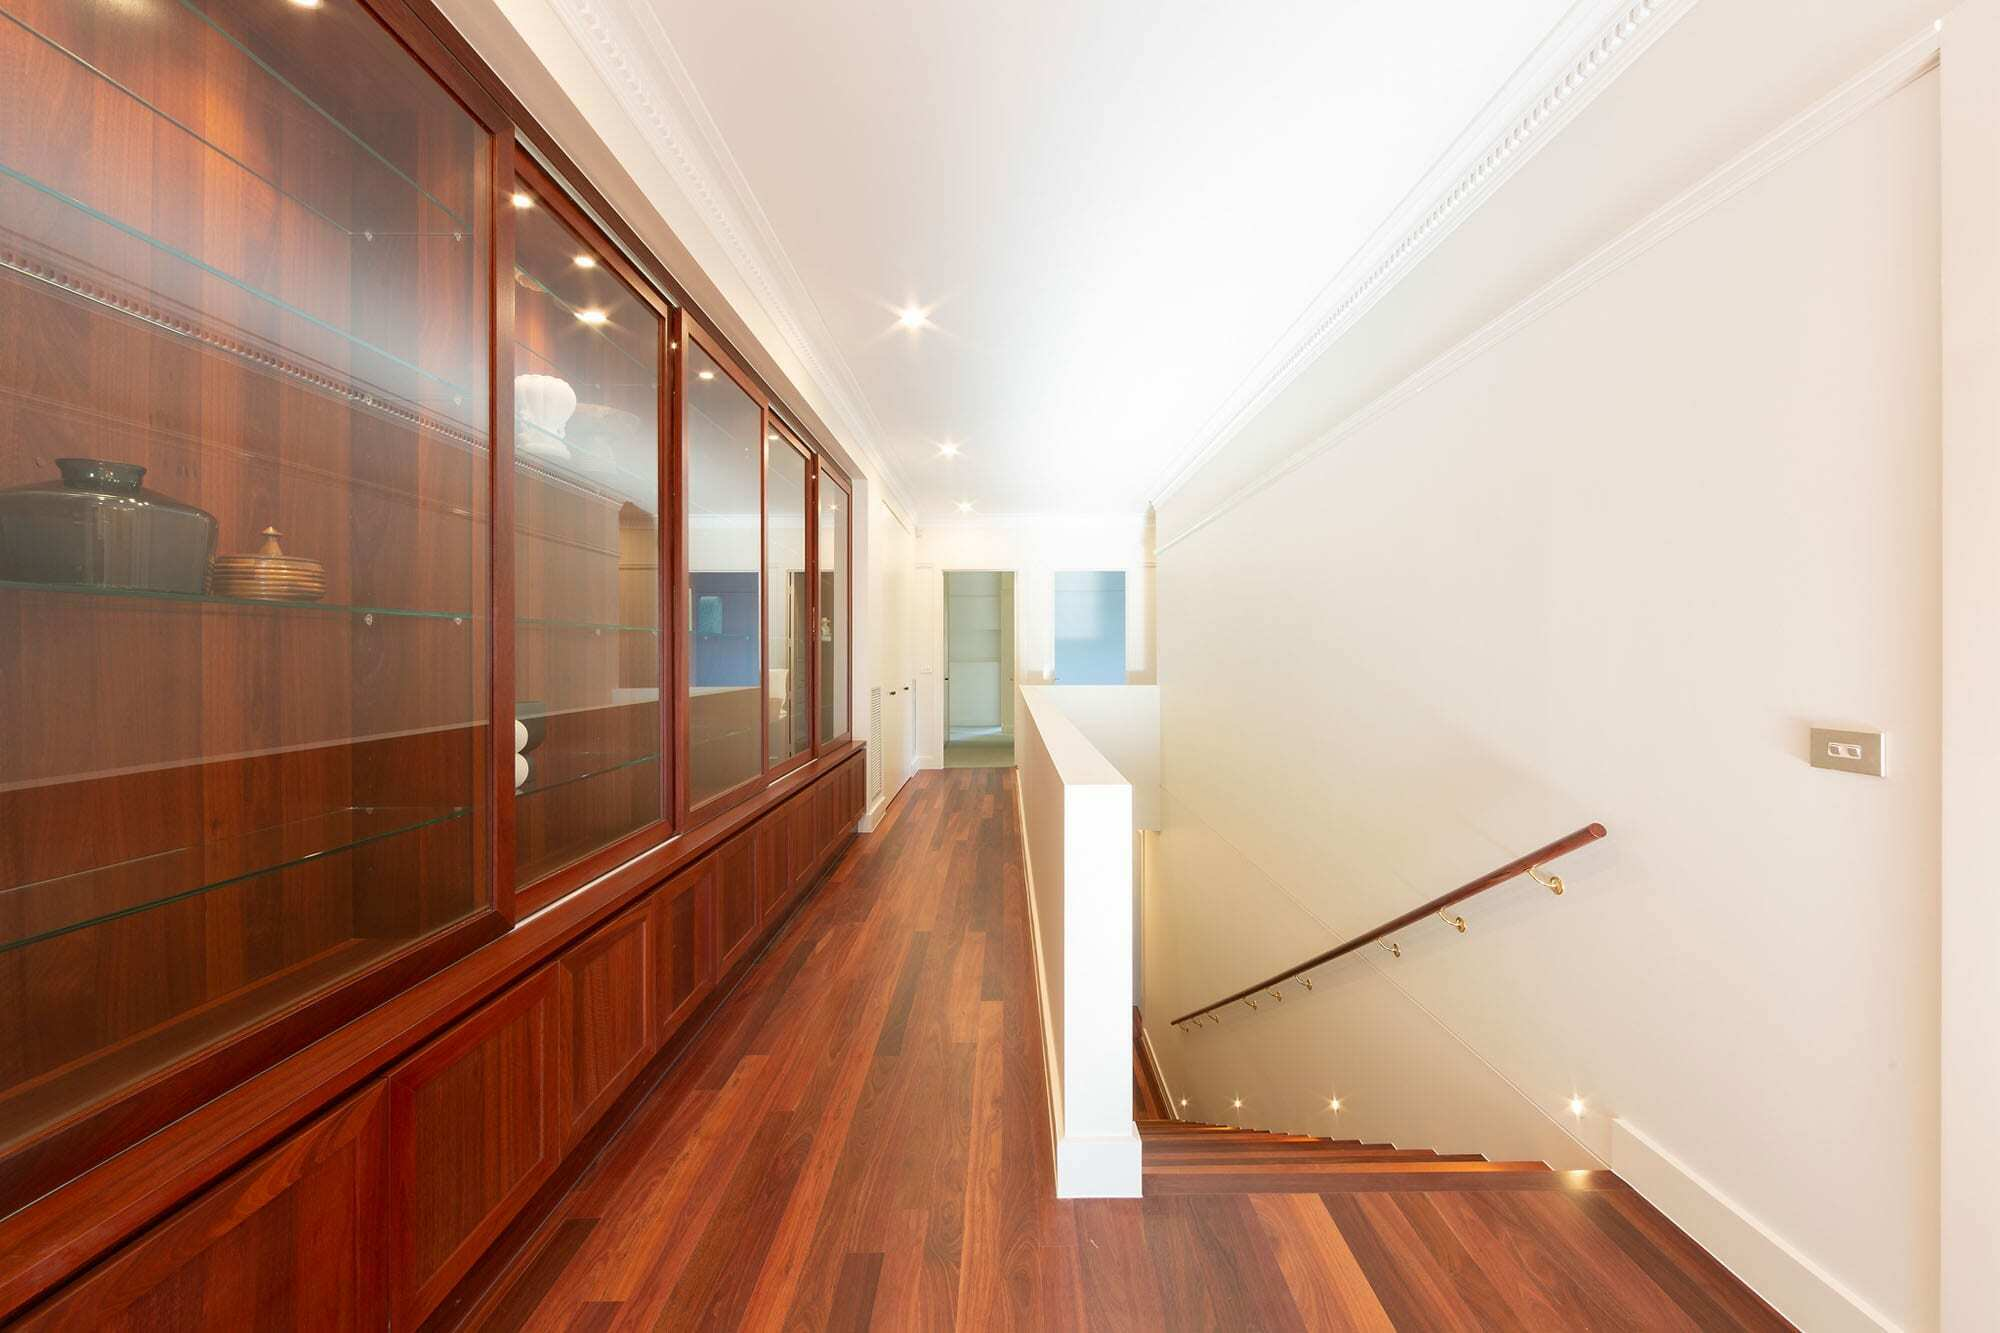 Homes by Howe Canberra builder – Governor Generals' renovation extension – Cabinetry